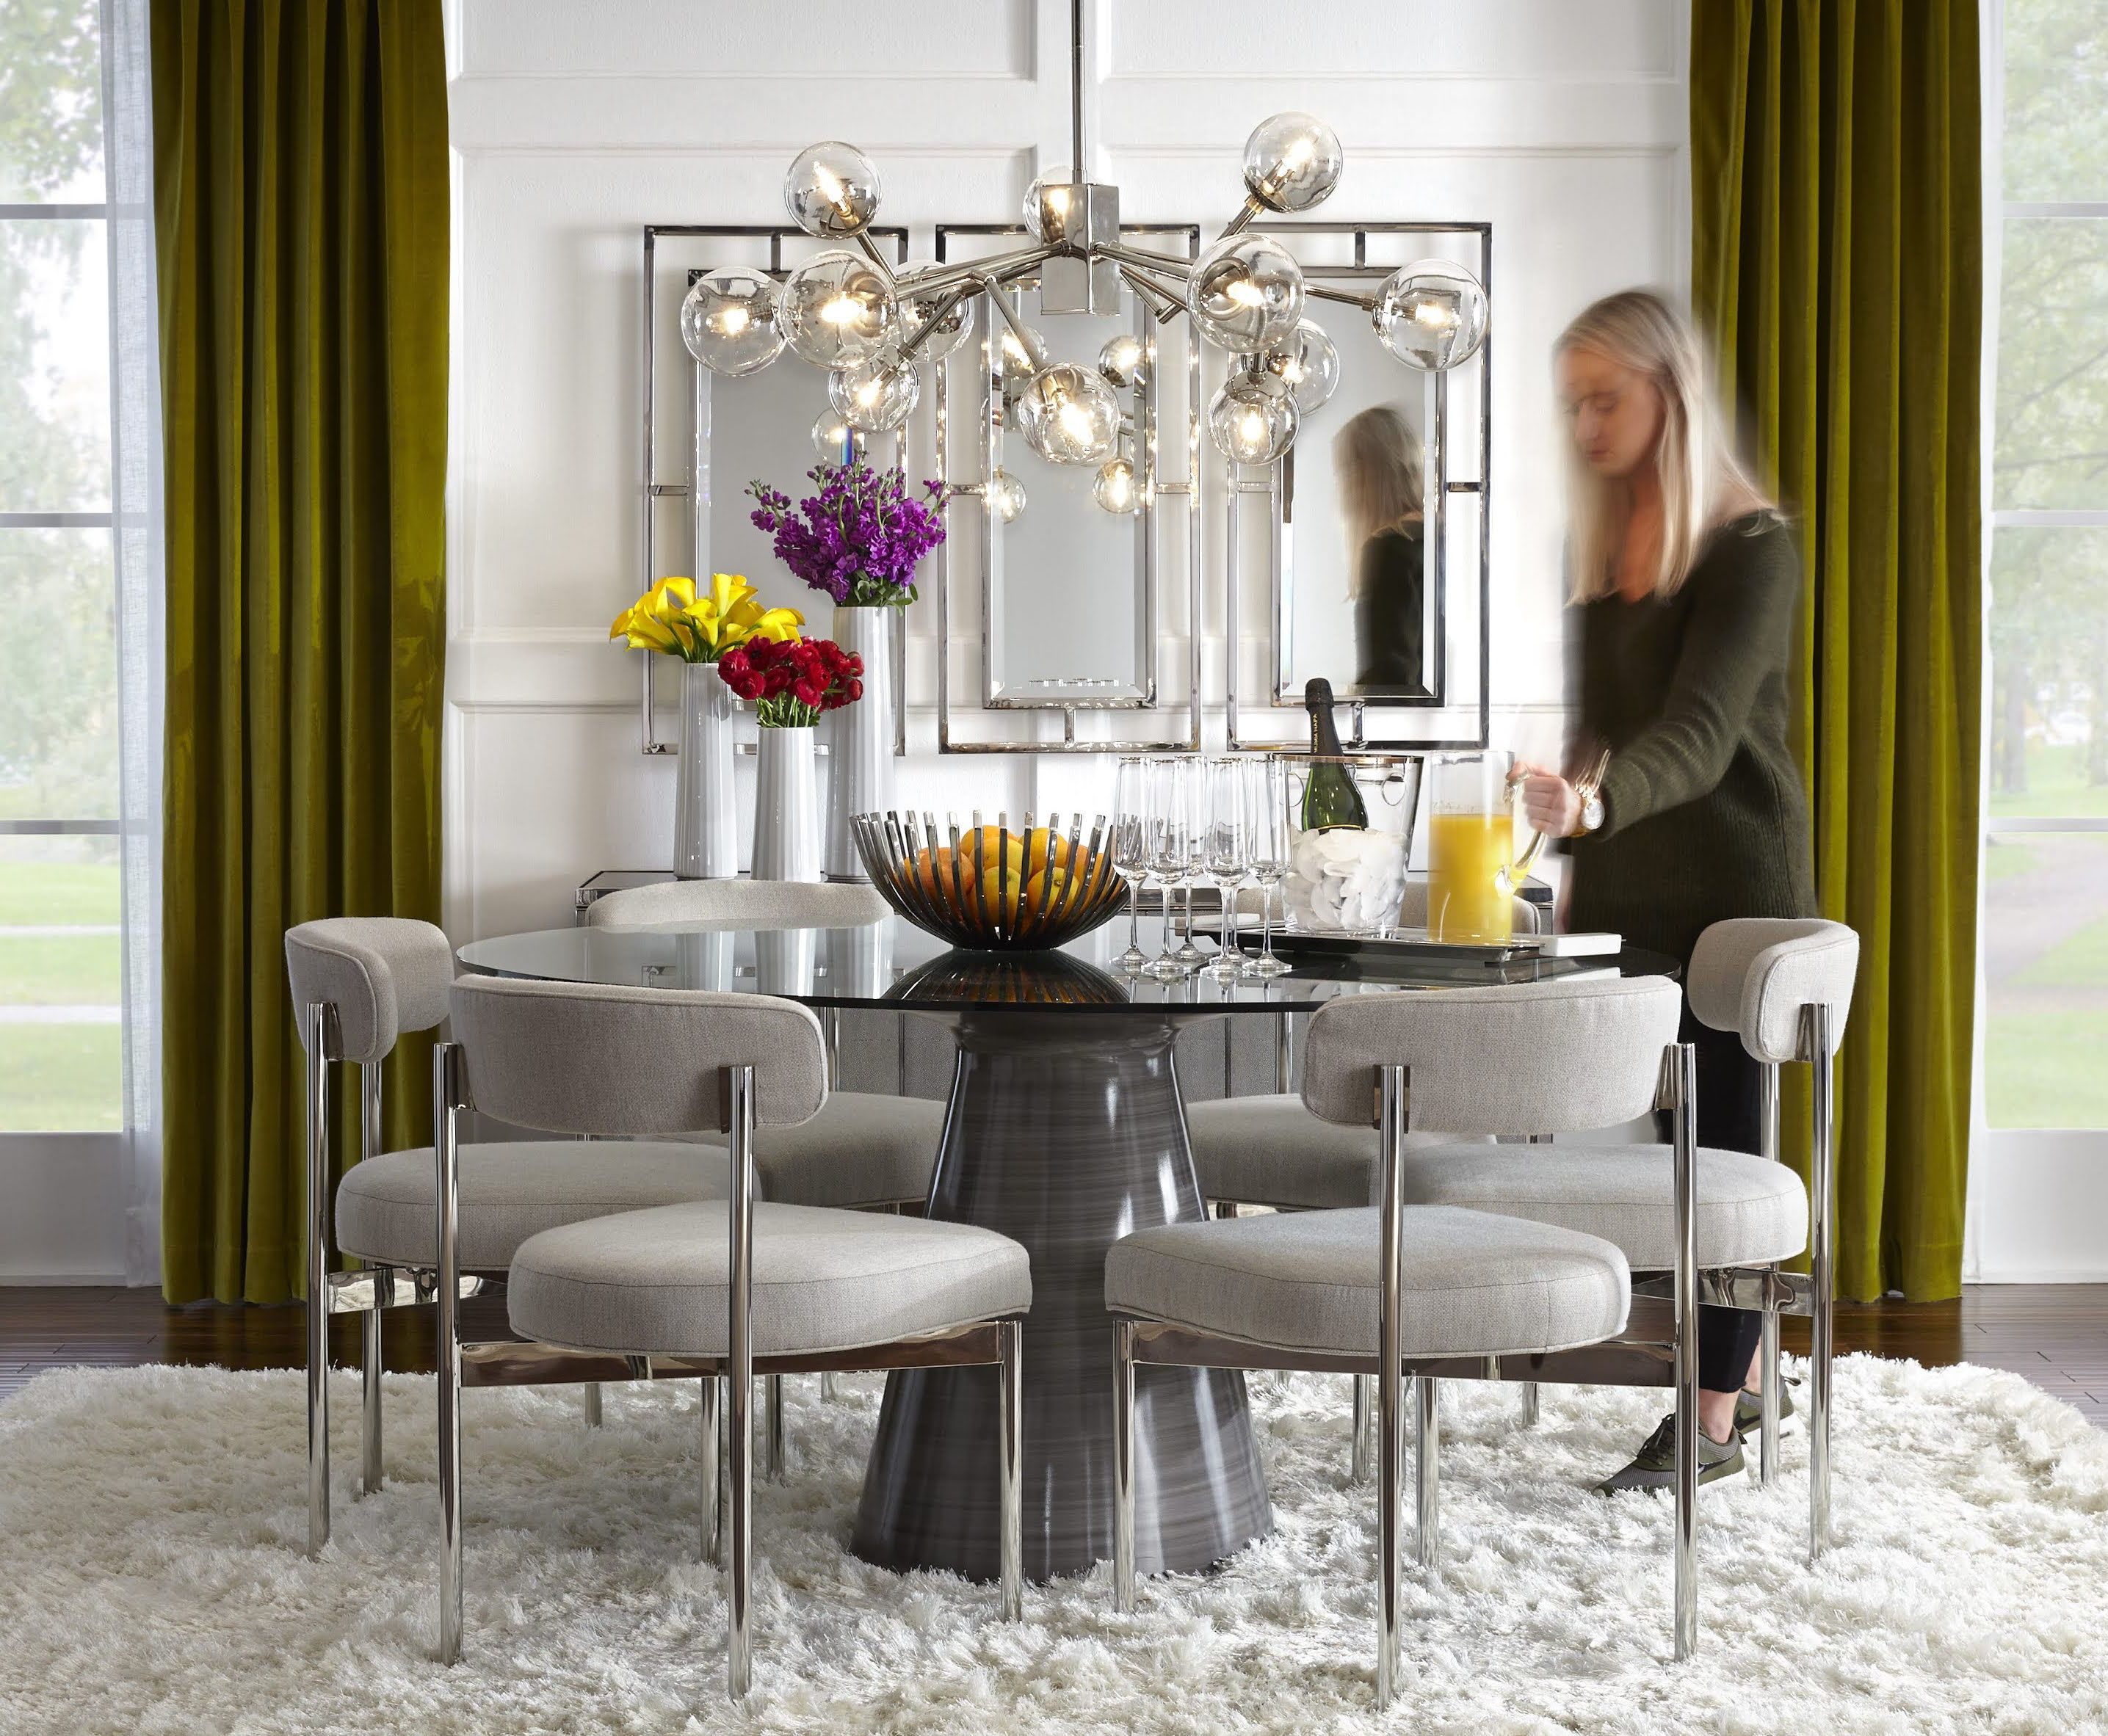 Mg Bw Set The Tone In Your Home With Mitchell Gold Bob Williams